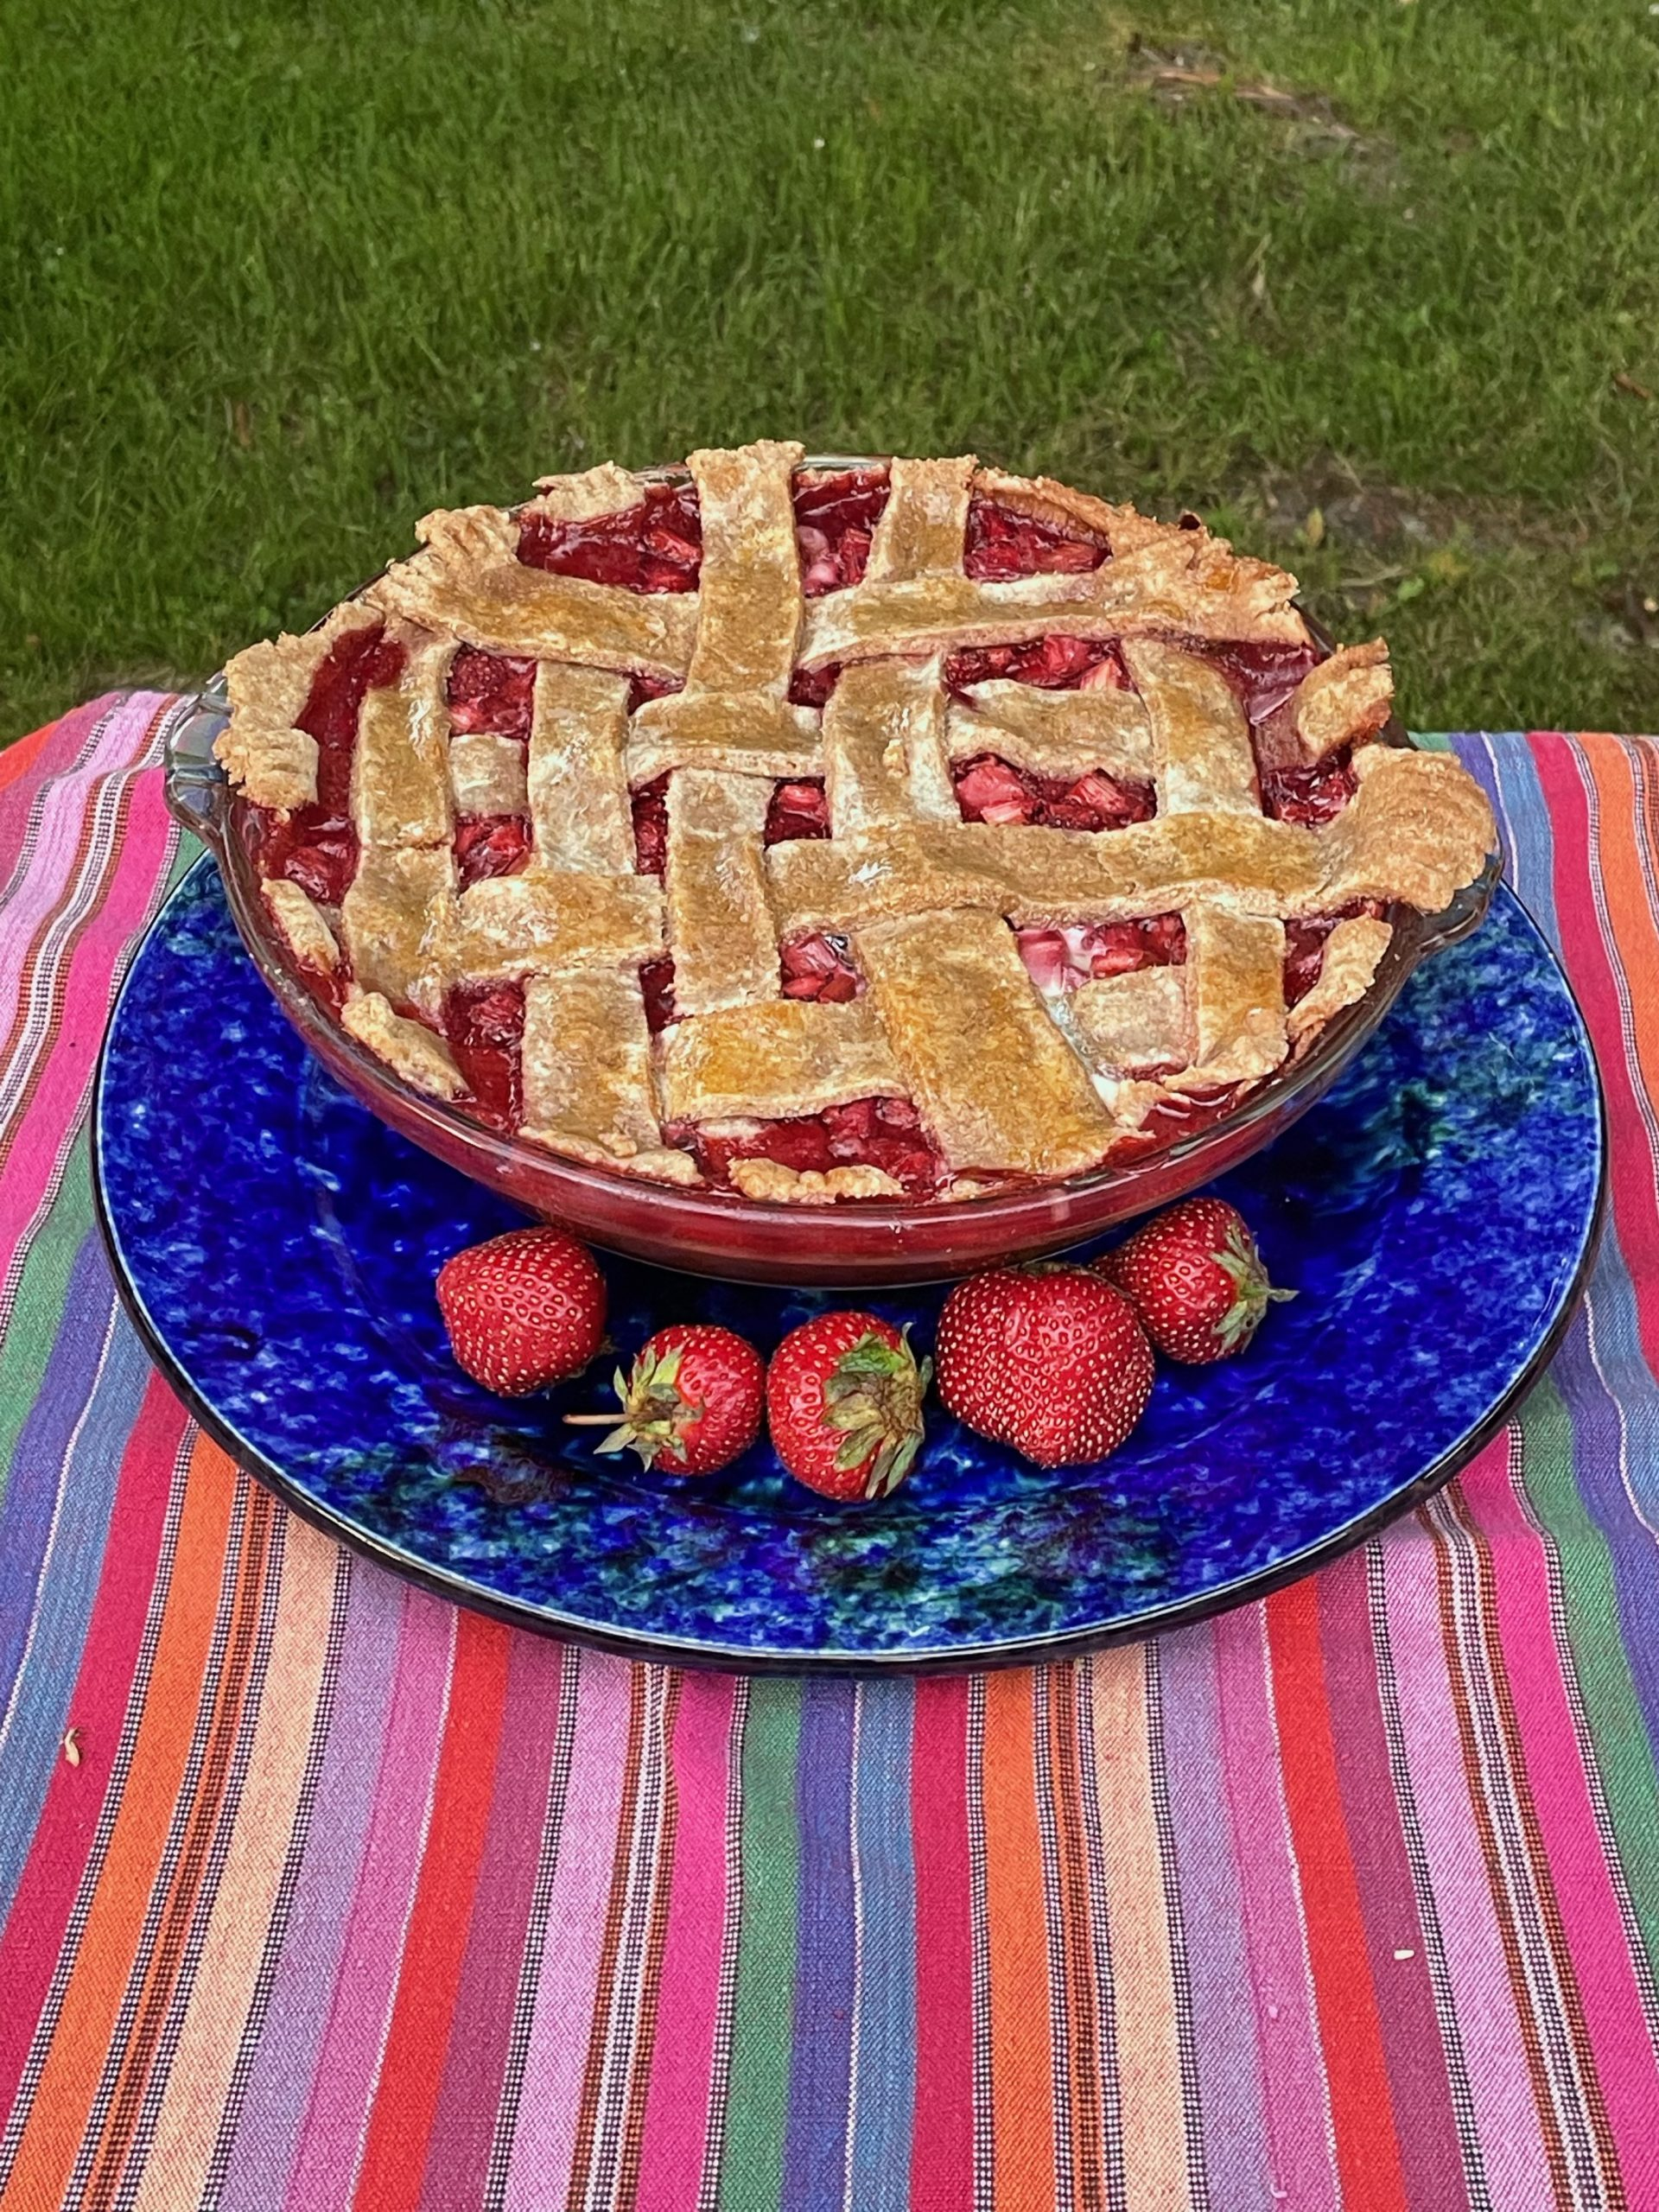 Strawberry rhubarb pie made with all local ingredients, except the cornstarch. (tip: switch sugar out for honey).